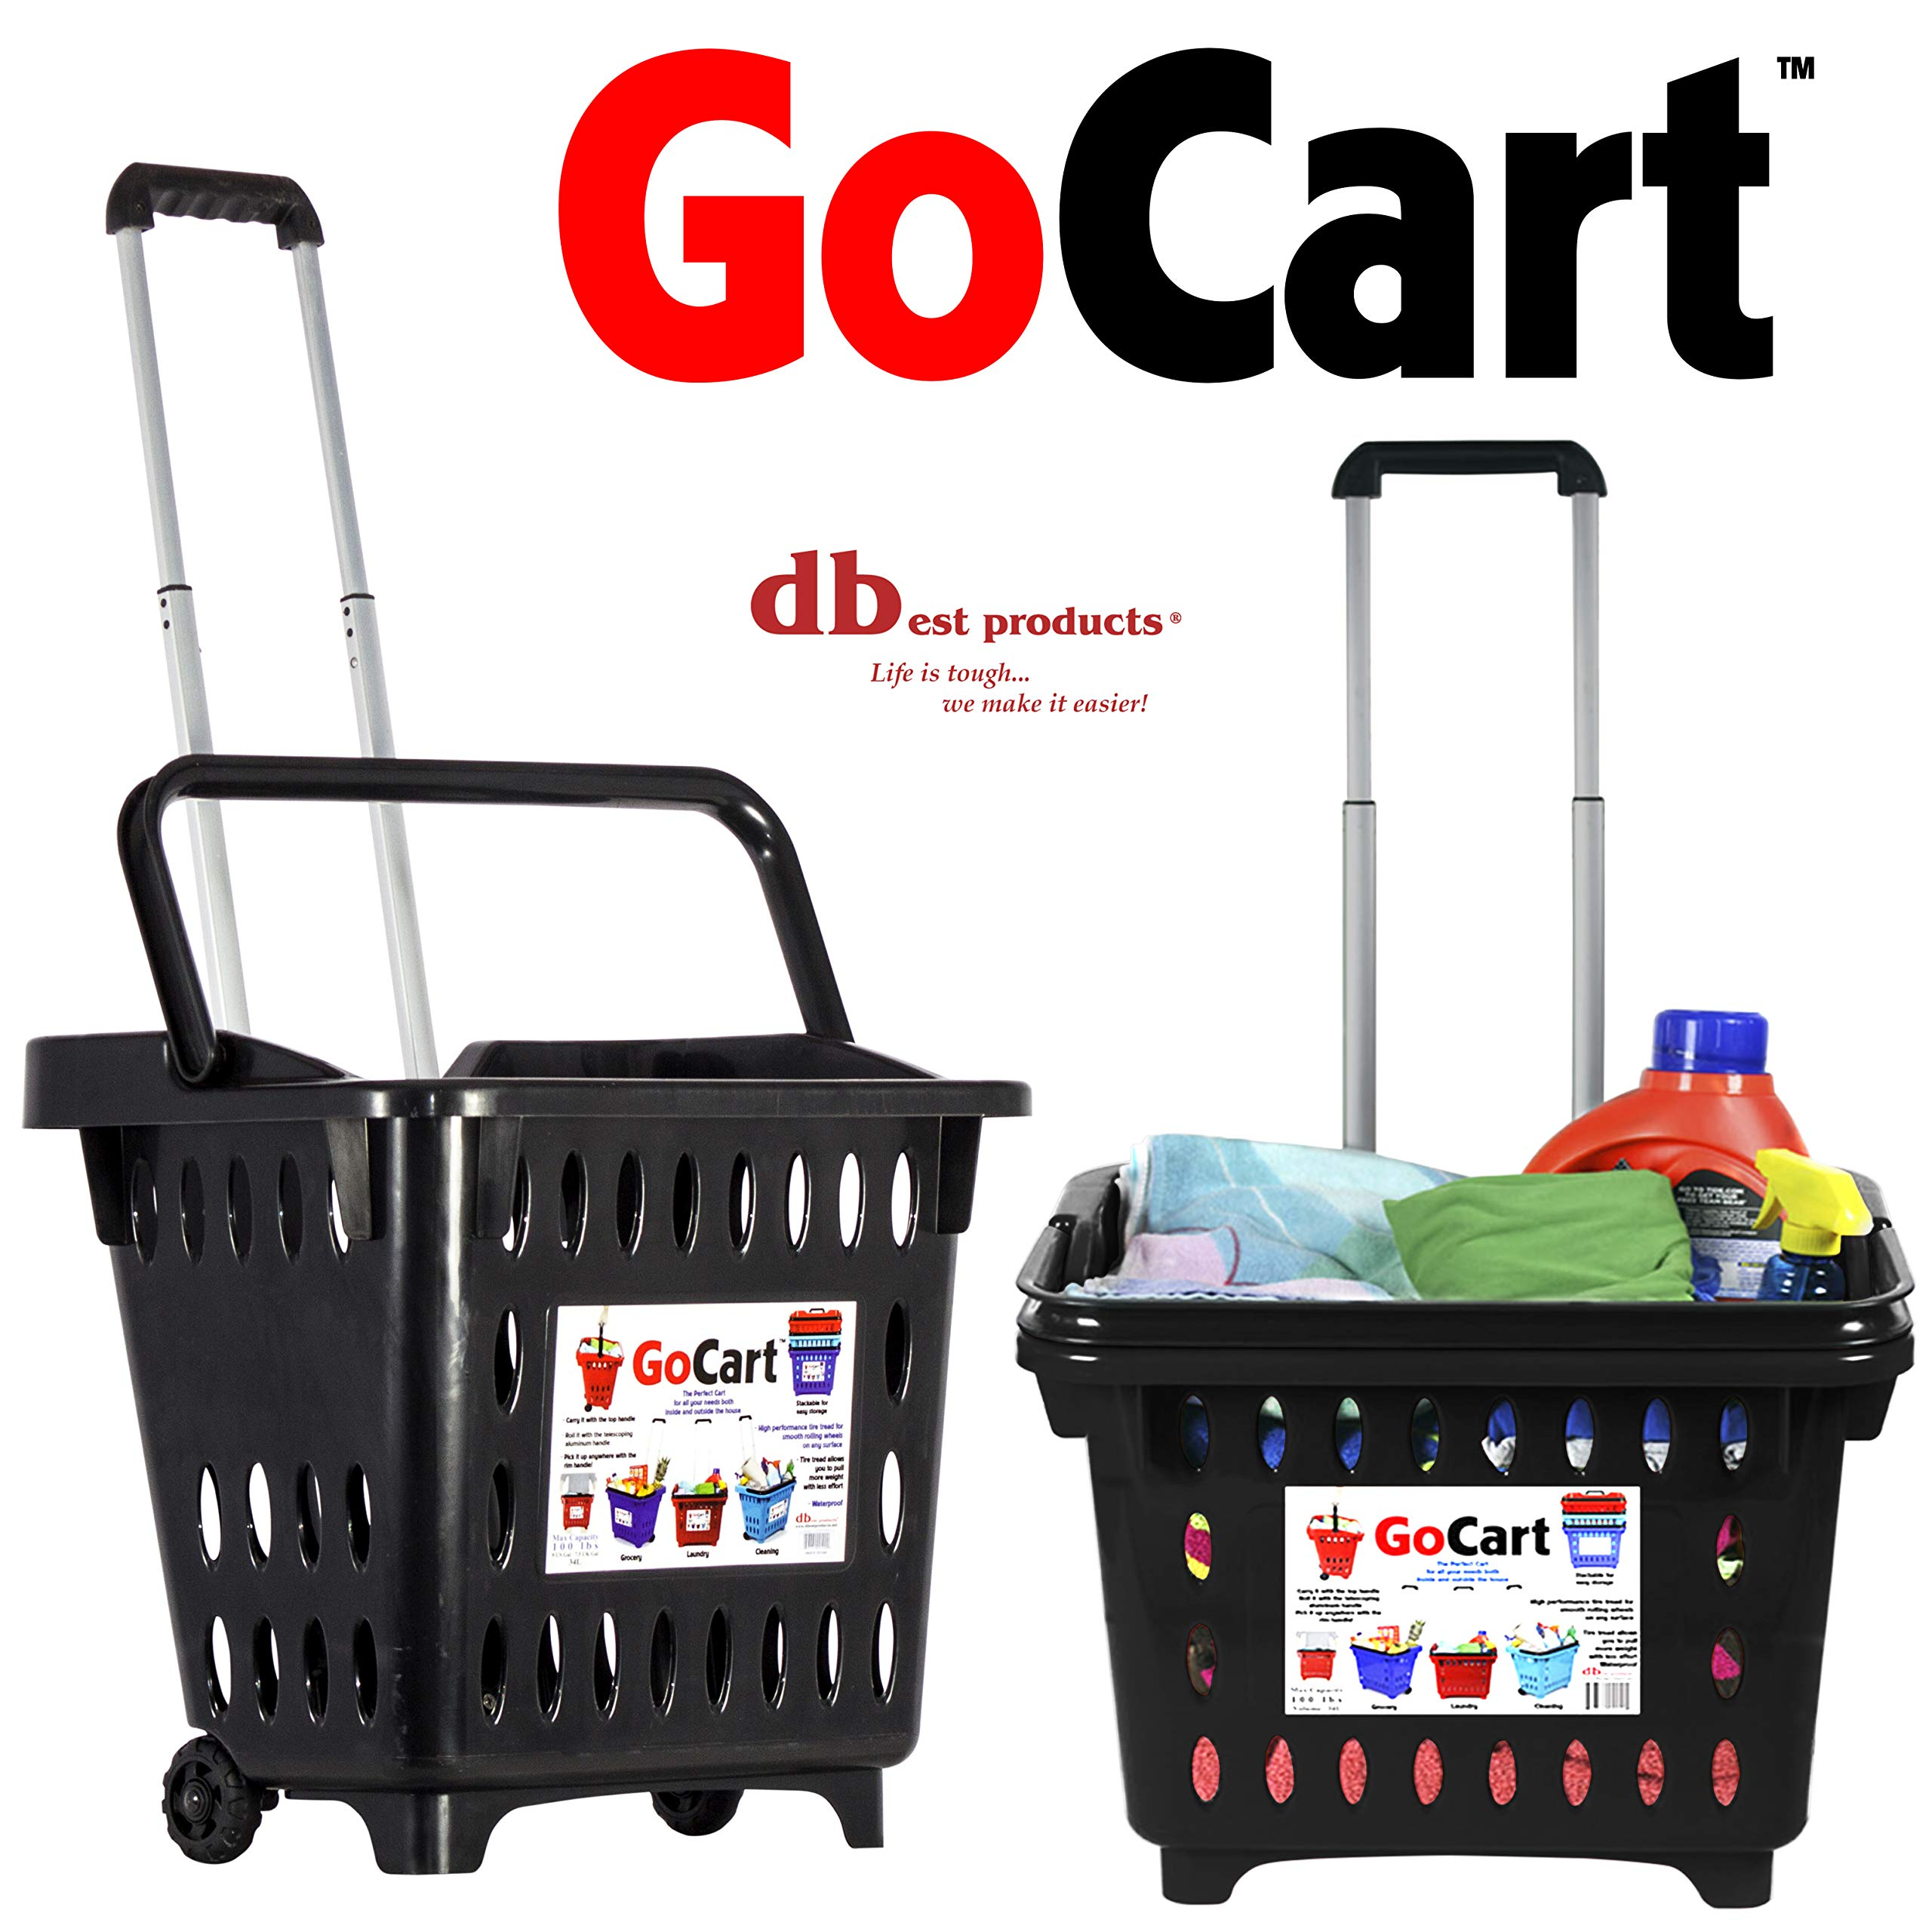 dbest products GoCart, Black Grocery Cart